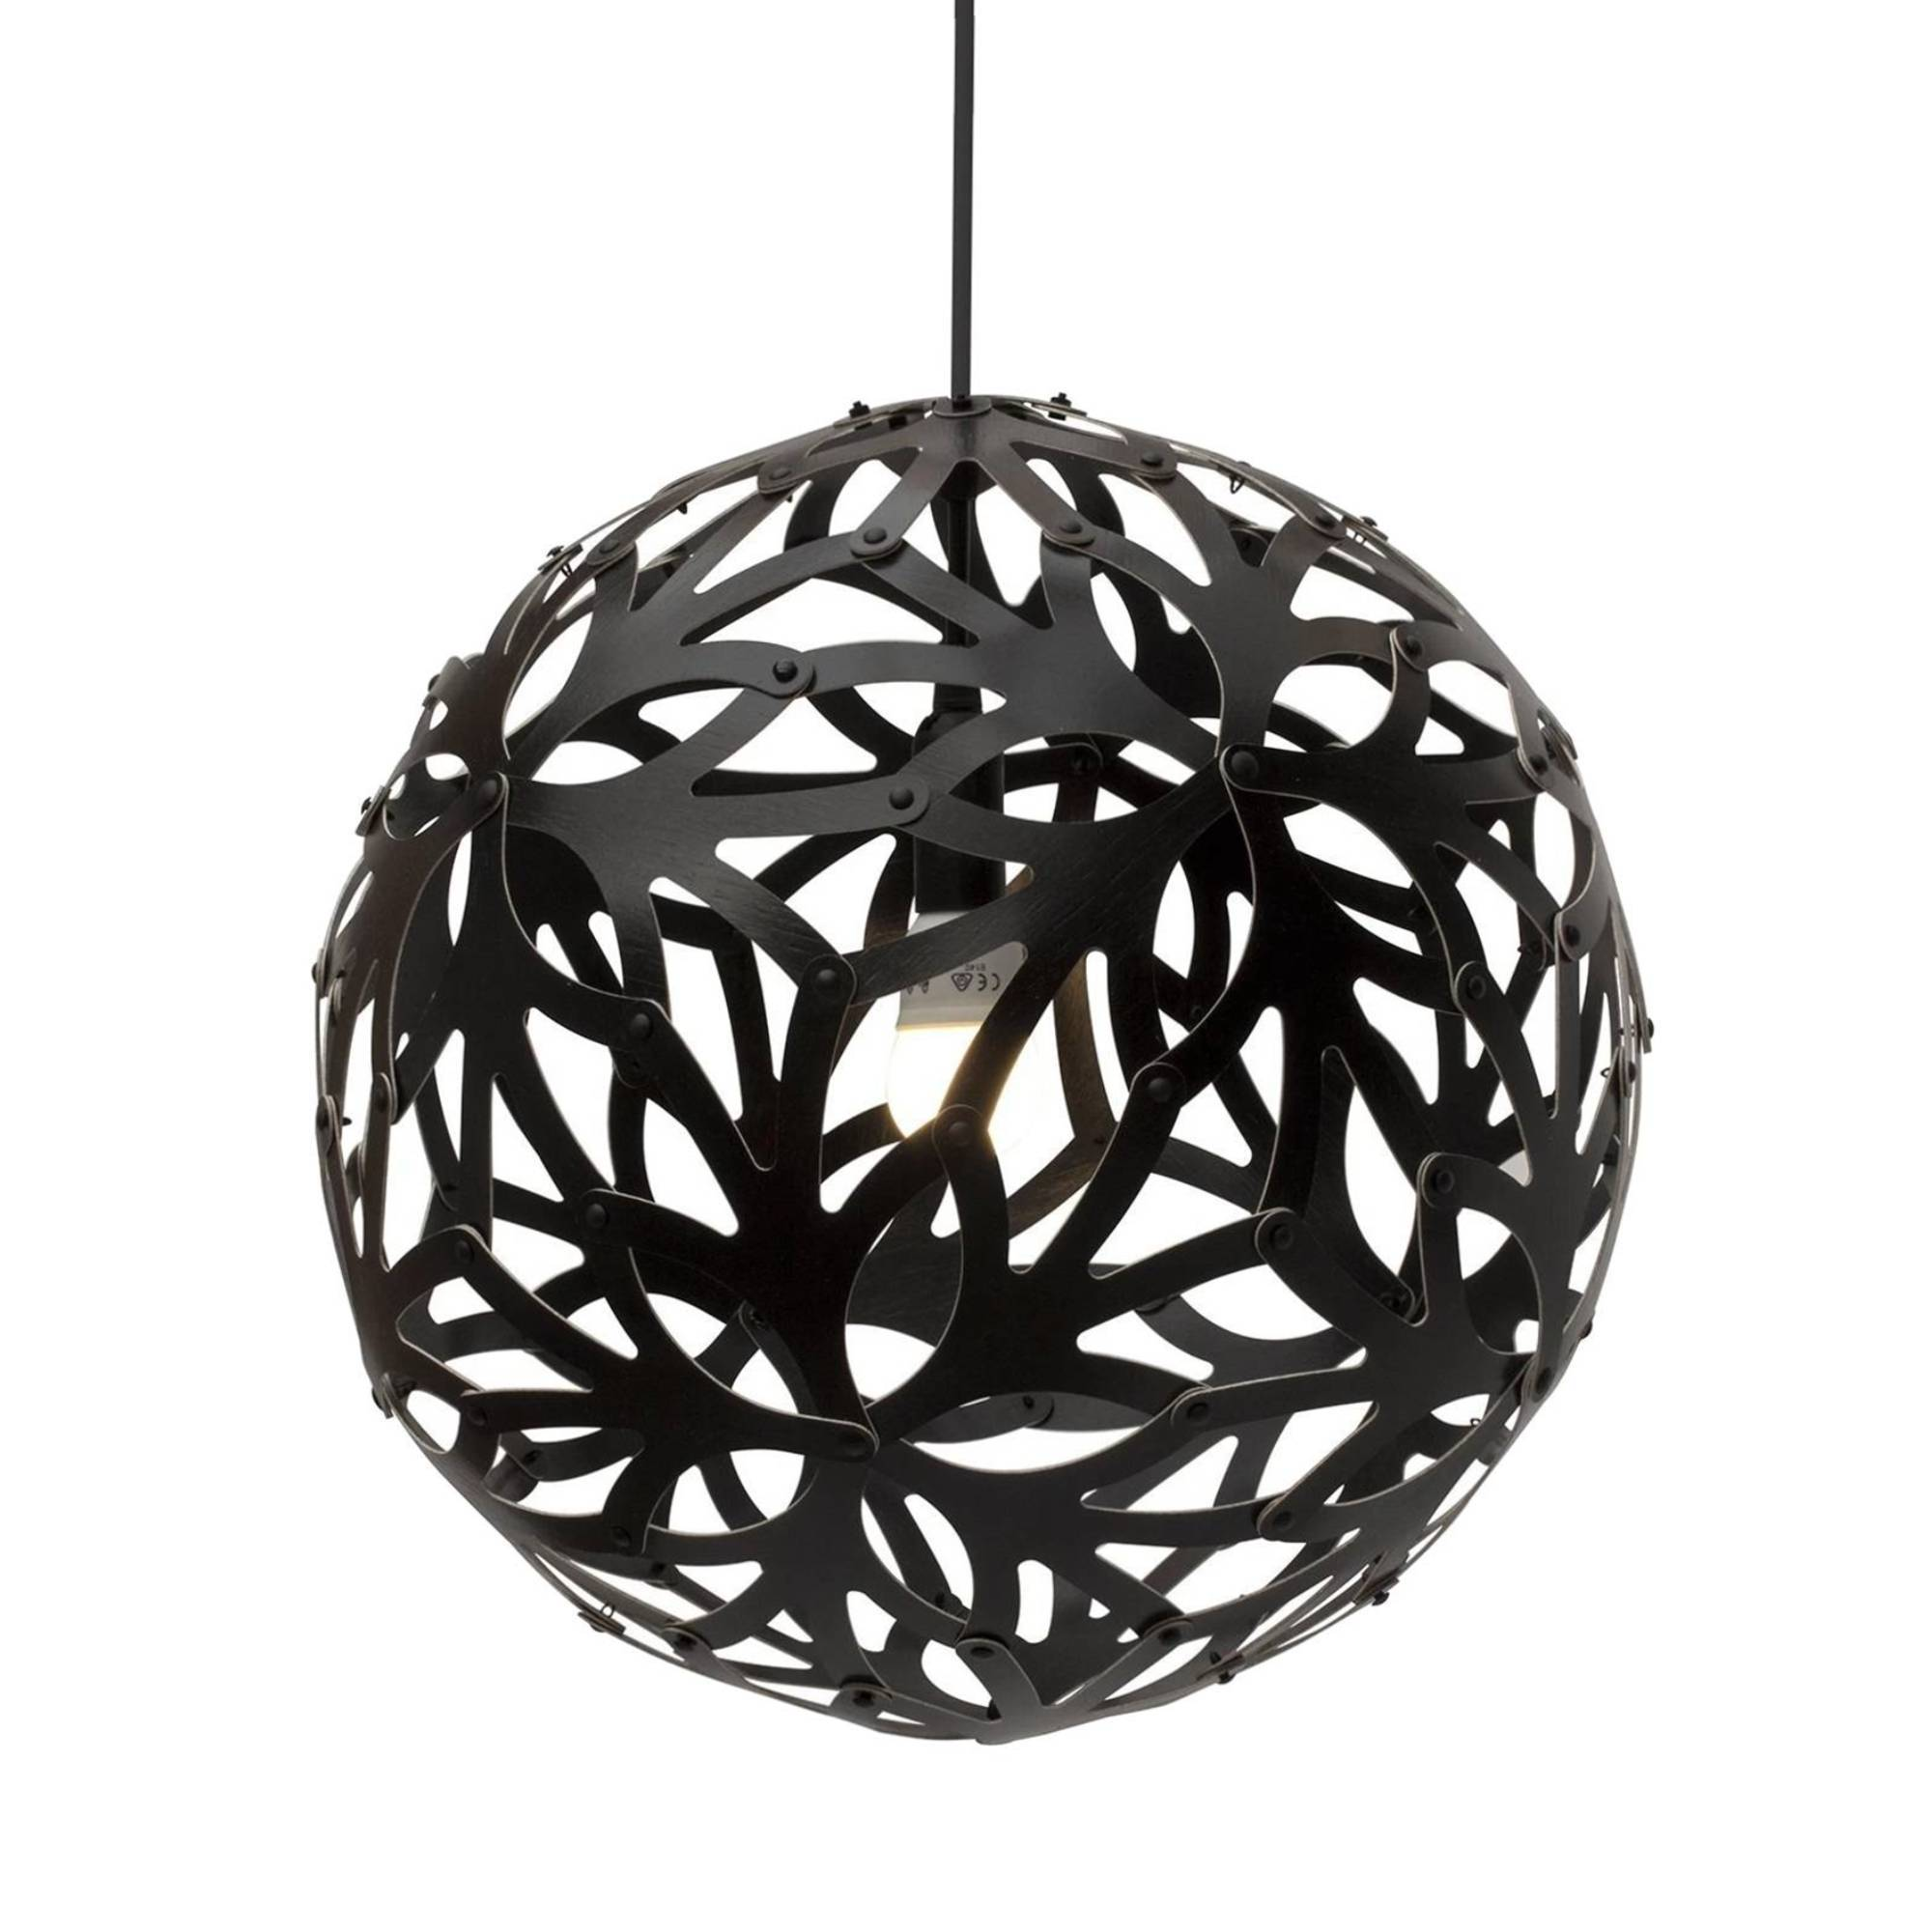 Floral Pendant Light: 800 + Black Two Sides